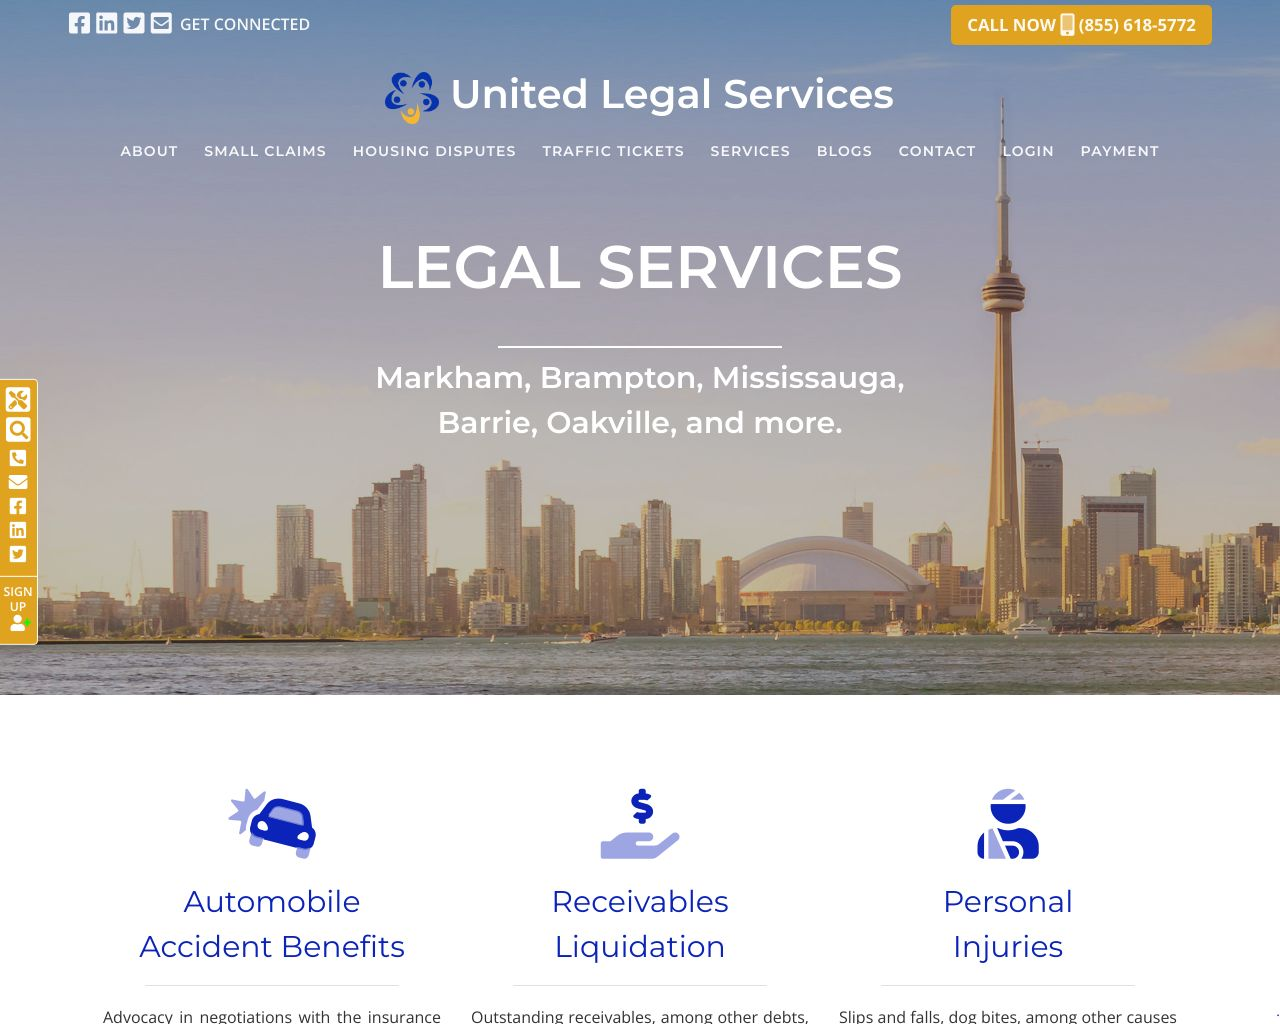 Website: United Legal Services